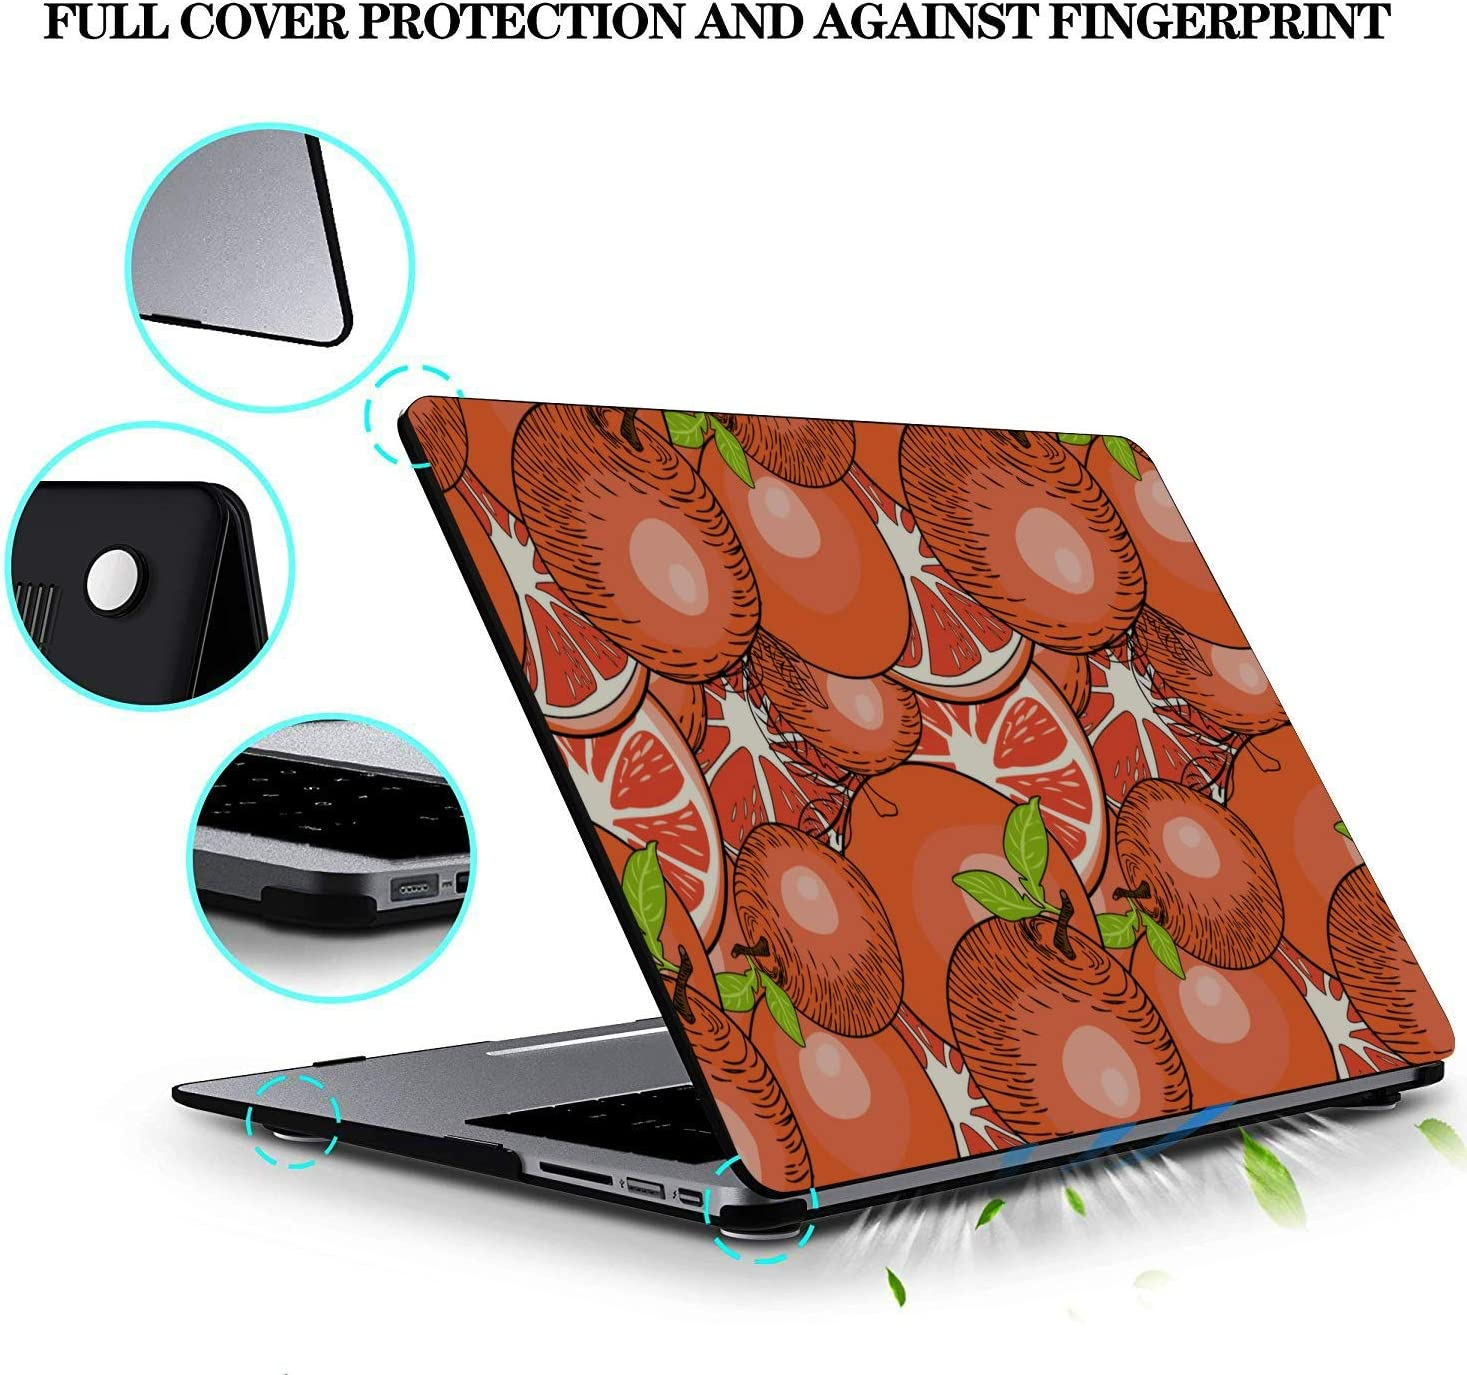 Mac Air Cover Summer Fruit Grapefruit Green Leaf Plastic Hard Shell Compatible Mac Air 11 Pro 13 15 A1466 MacBook Air Case Protection for MacBook 2016-2019 Version